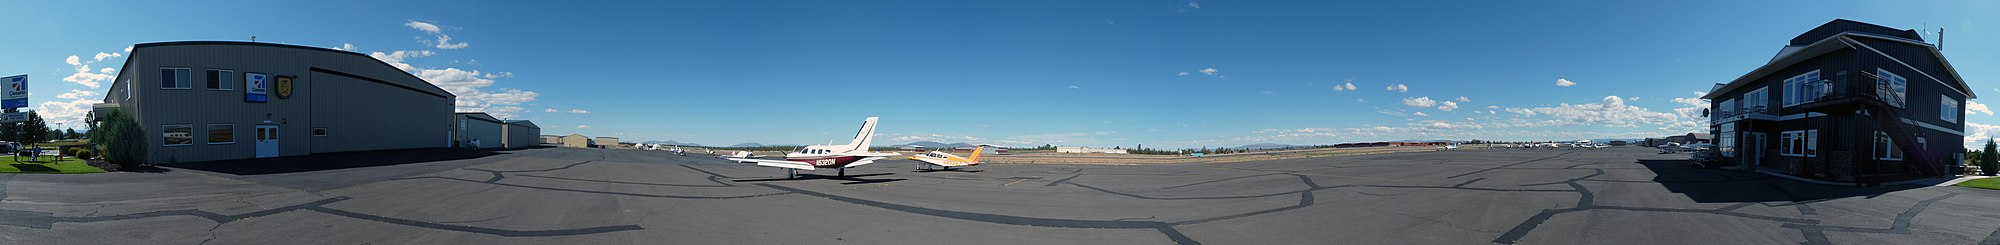 Picture of Bend, Oregon airport